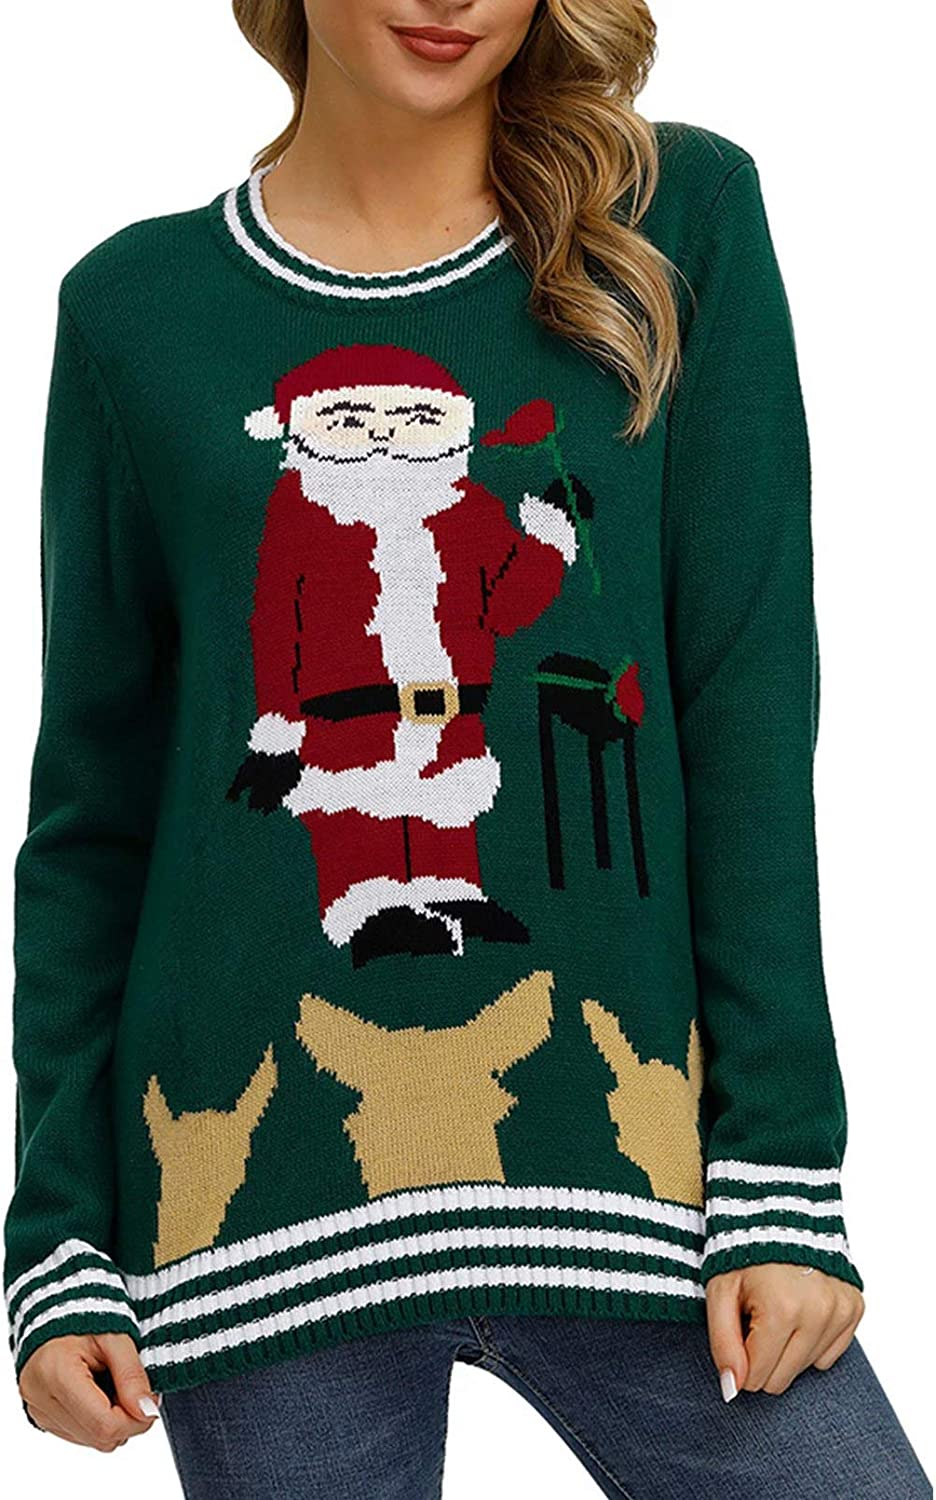 Linsery Women's Christmas Funny Patterned Knitted Crewneck Casual Pullover Sweater Chunky Warm Winter Pullover Outerwear